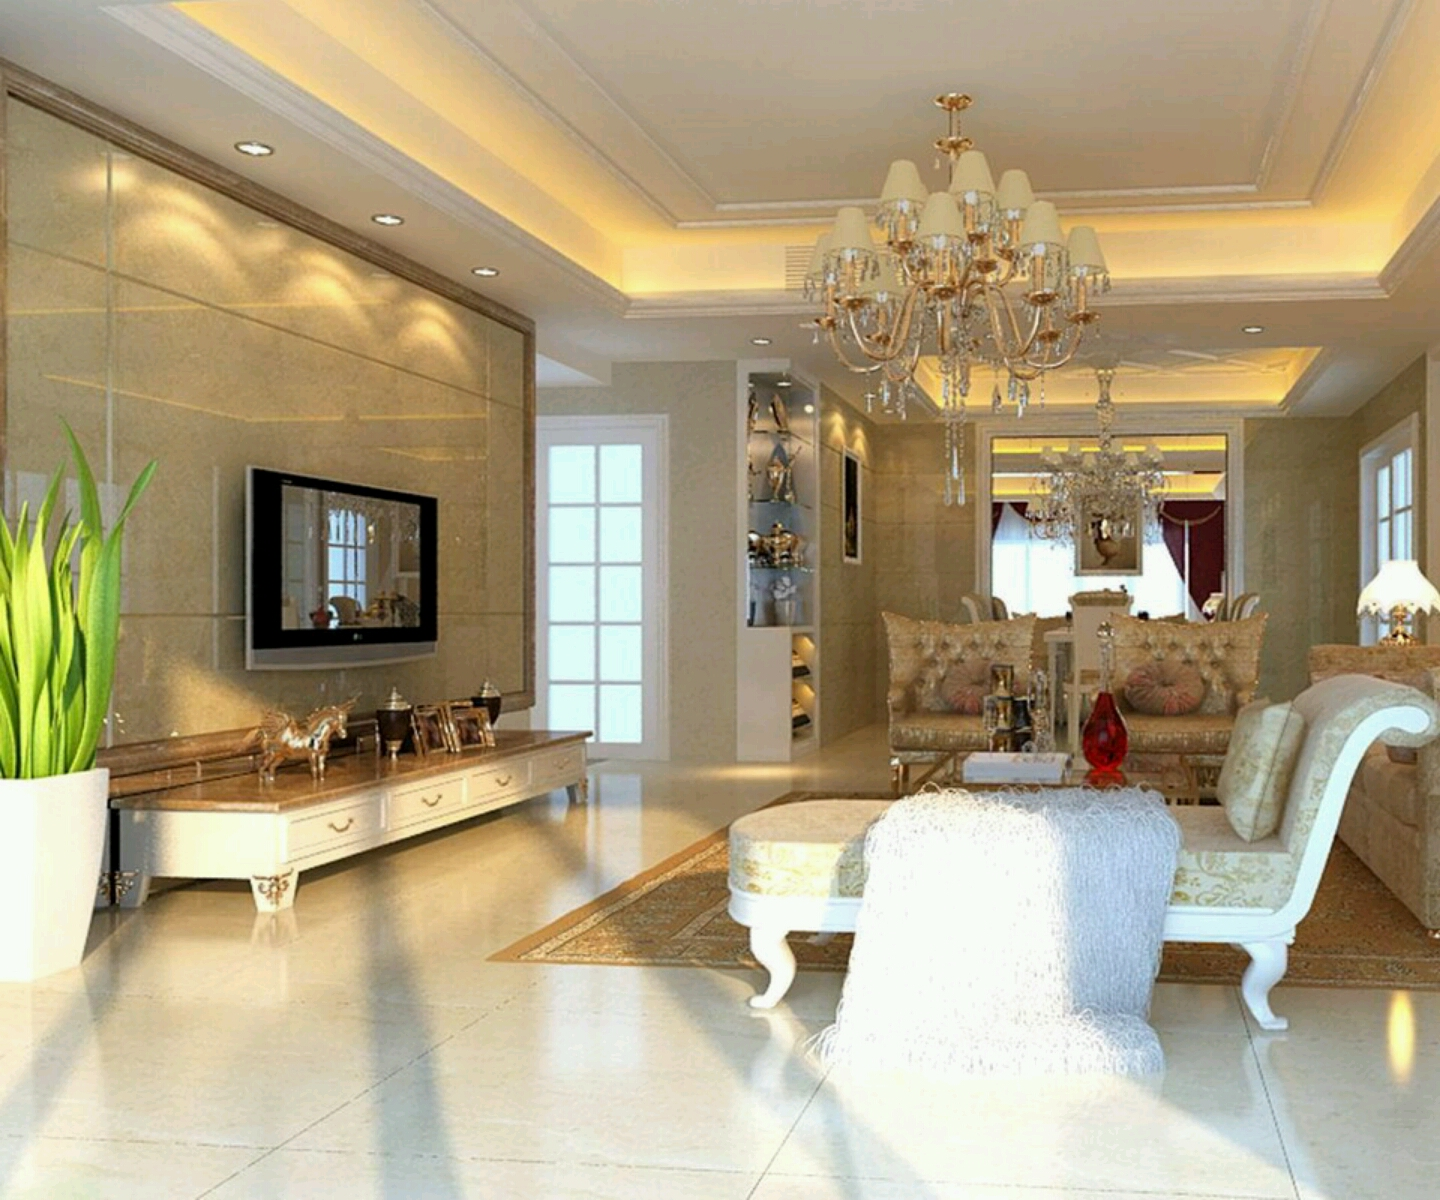 Living Room Interior Design: Home Decor 2012: Luxury Homes Interior Decoration Living